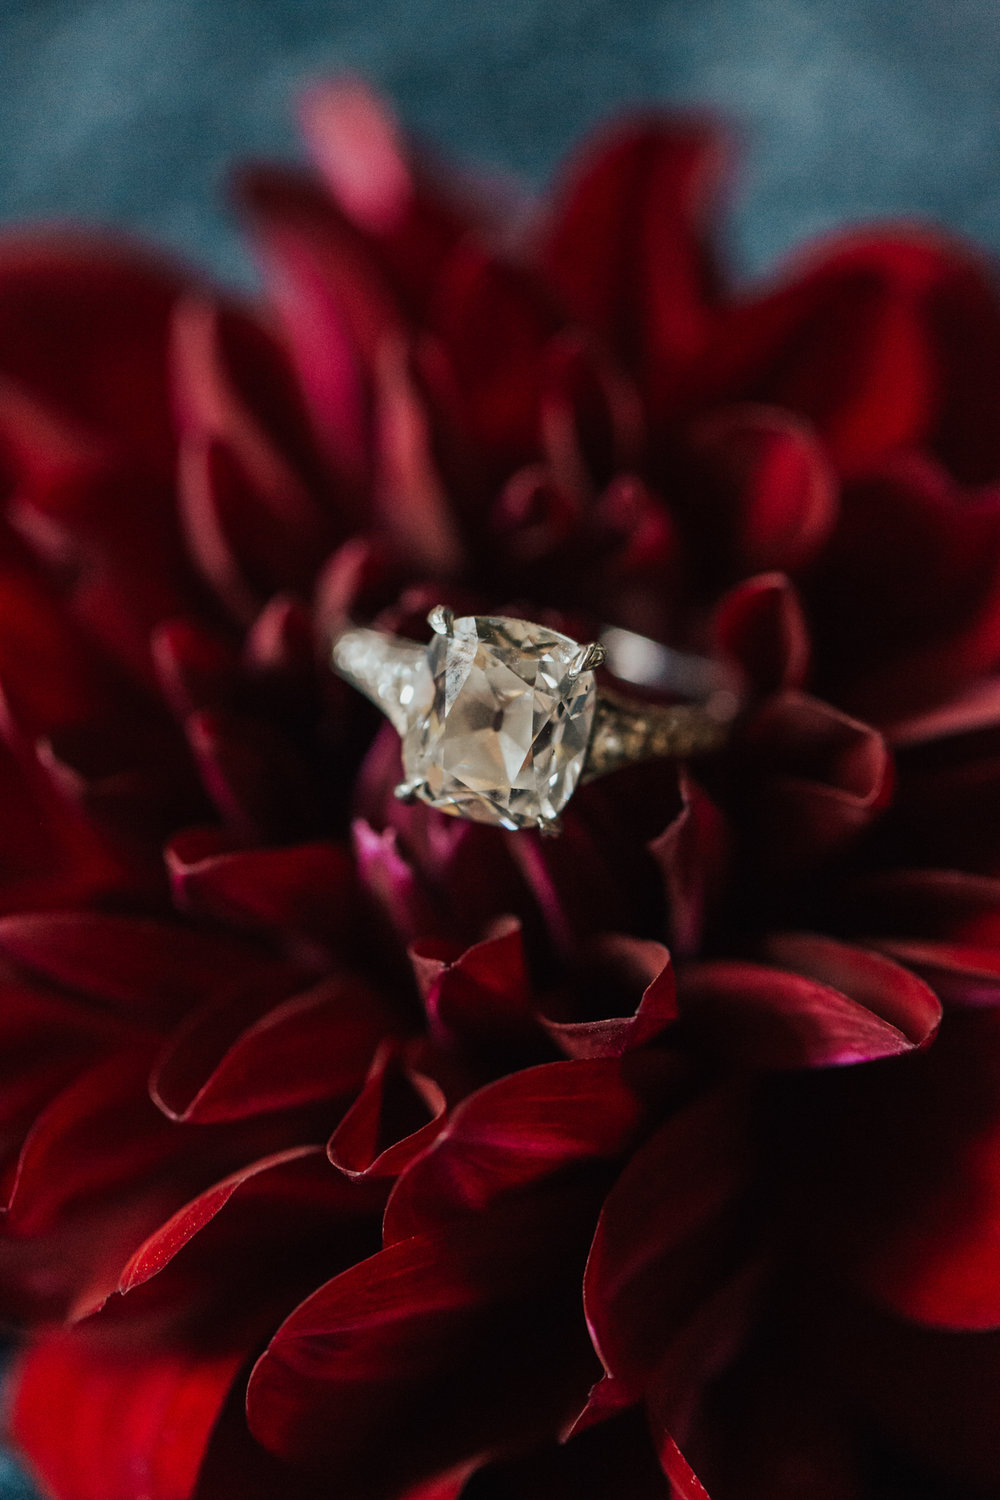 engagement ring in flower